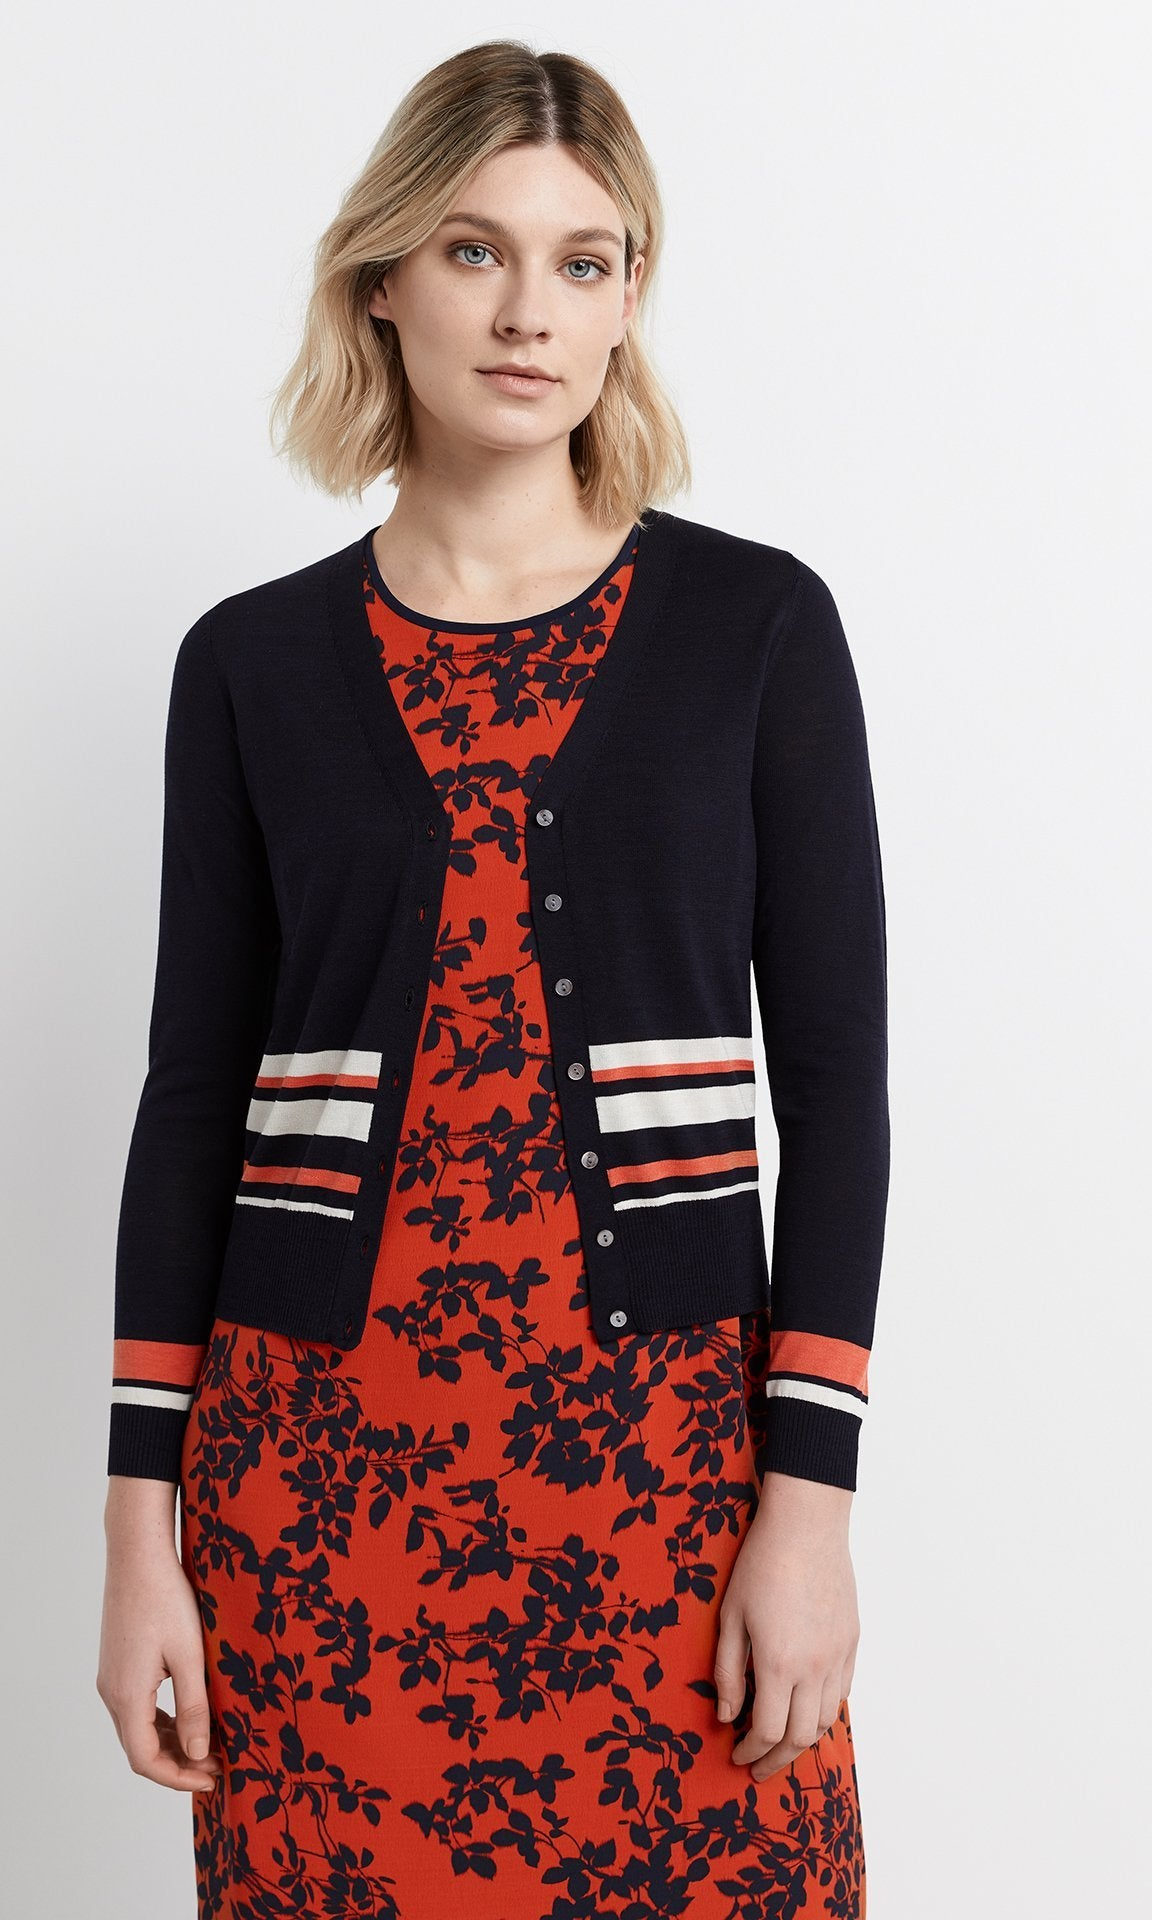 Manarola Cardigan - Navy/Lobster/Creme